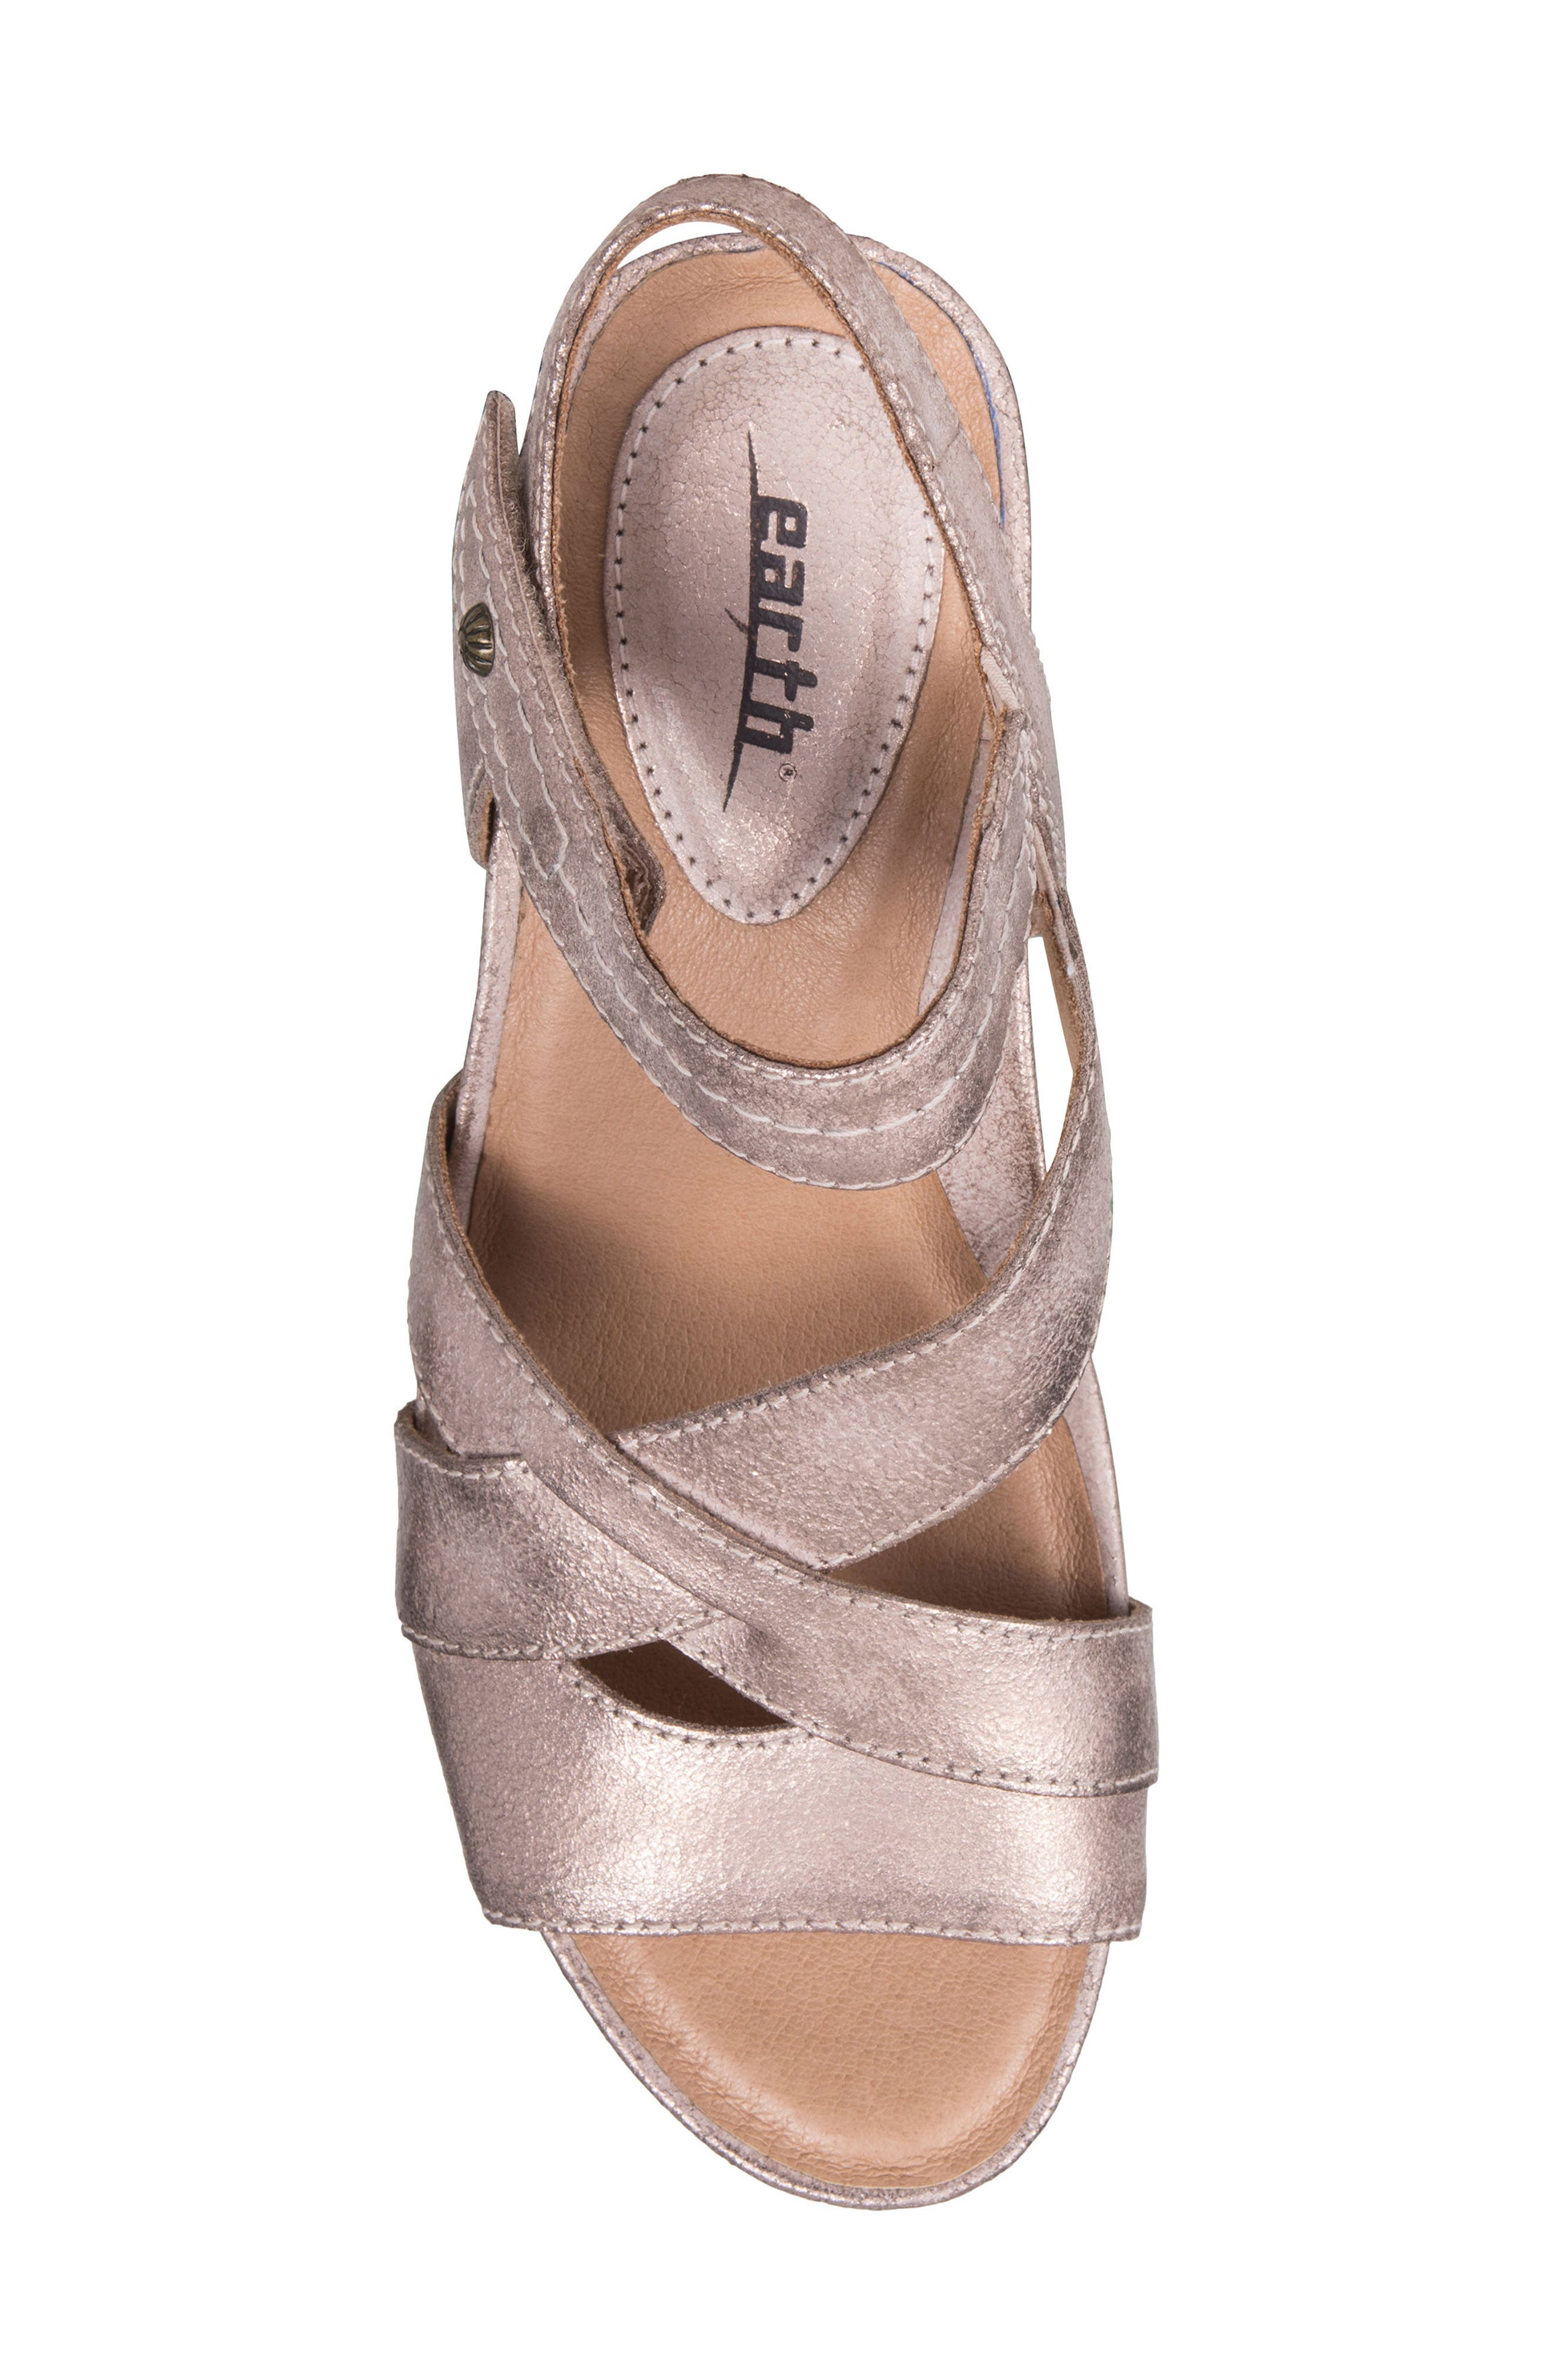 Thistle Wedge Sandal,                             Alternate thumbnail 5, color,                             Pink Leather